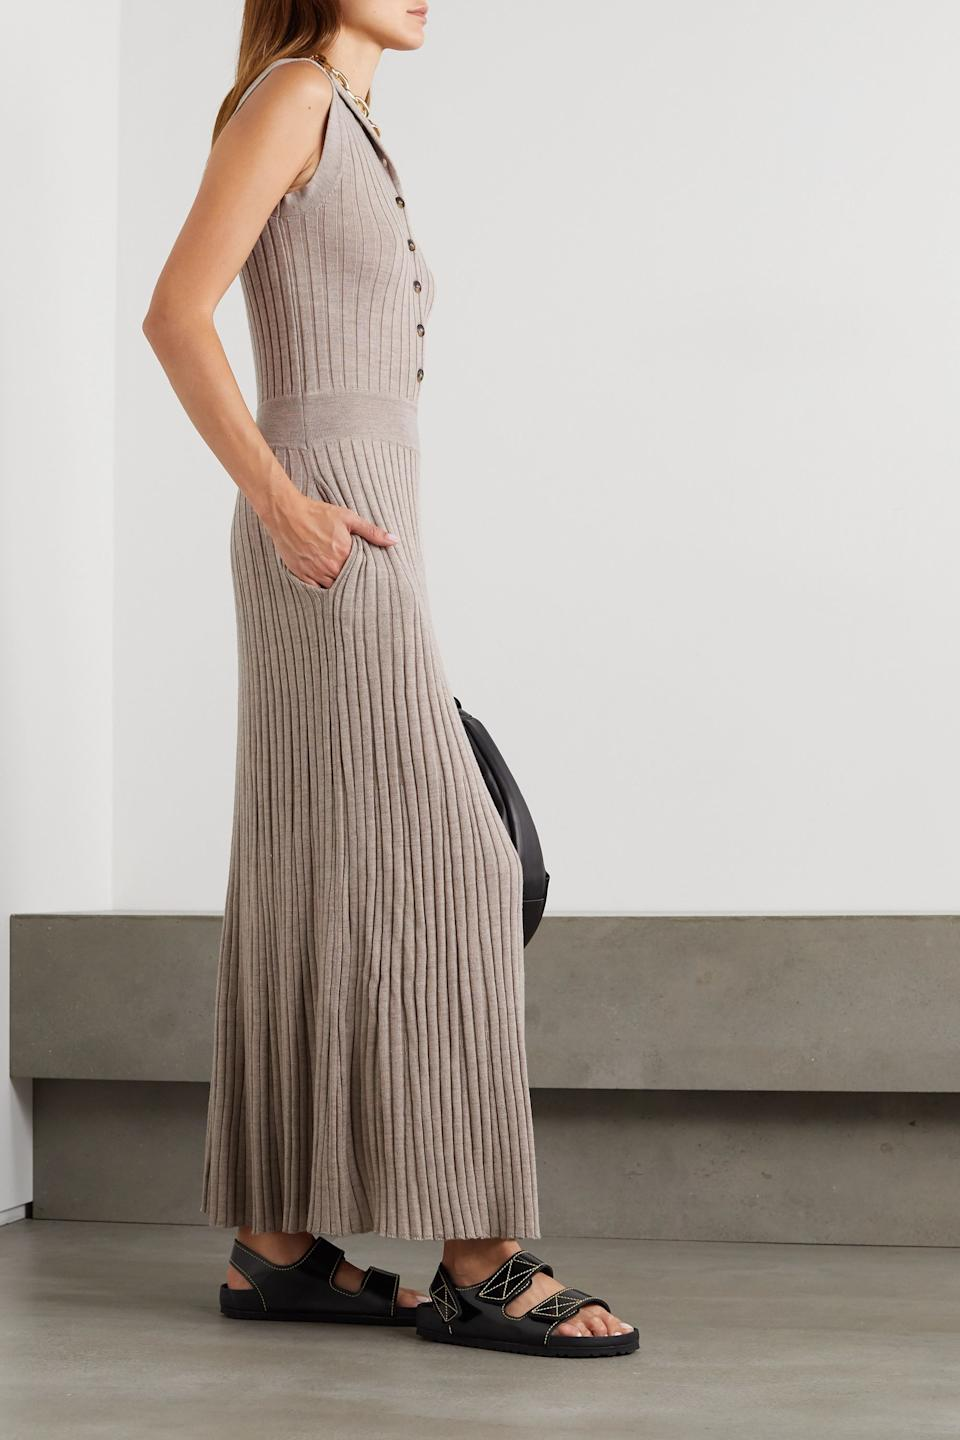 "<br><br><strong>LOULOU STUDIO</strong> Arborea Ribbed Wool Maxi Dress, $, available at <a href=""https://go.skimresources.com/?id=30283X879131&url=https%3A%2F%2Fwww.net-a-porter.com%2Fen-us%2Fshop%2Fproduct%2Floulou-studio%2Farborea-ribbed-wool-maxi-dress%2F1265911%3F"" rel=""nofollow noopener"" target=""_blank"" data-ylk=""slk:Net-A-Porter"" class=""link rapid-noclick-resp"">Net-A-Porter</a>"